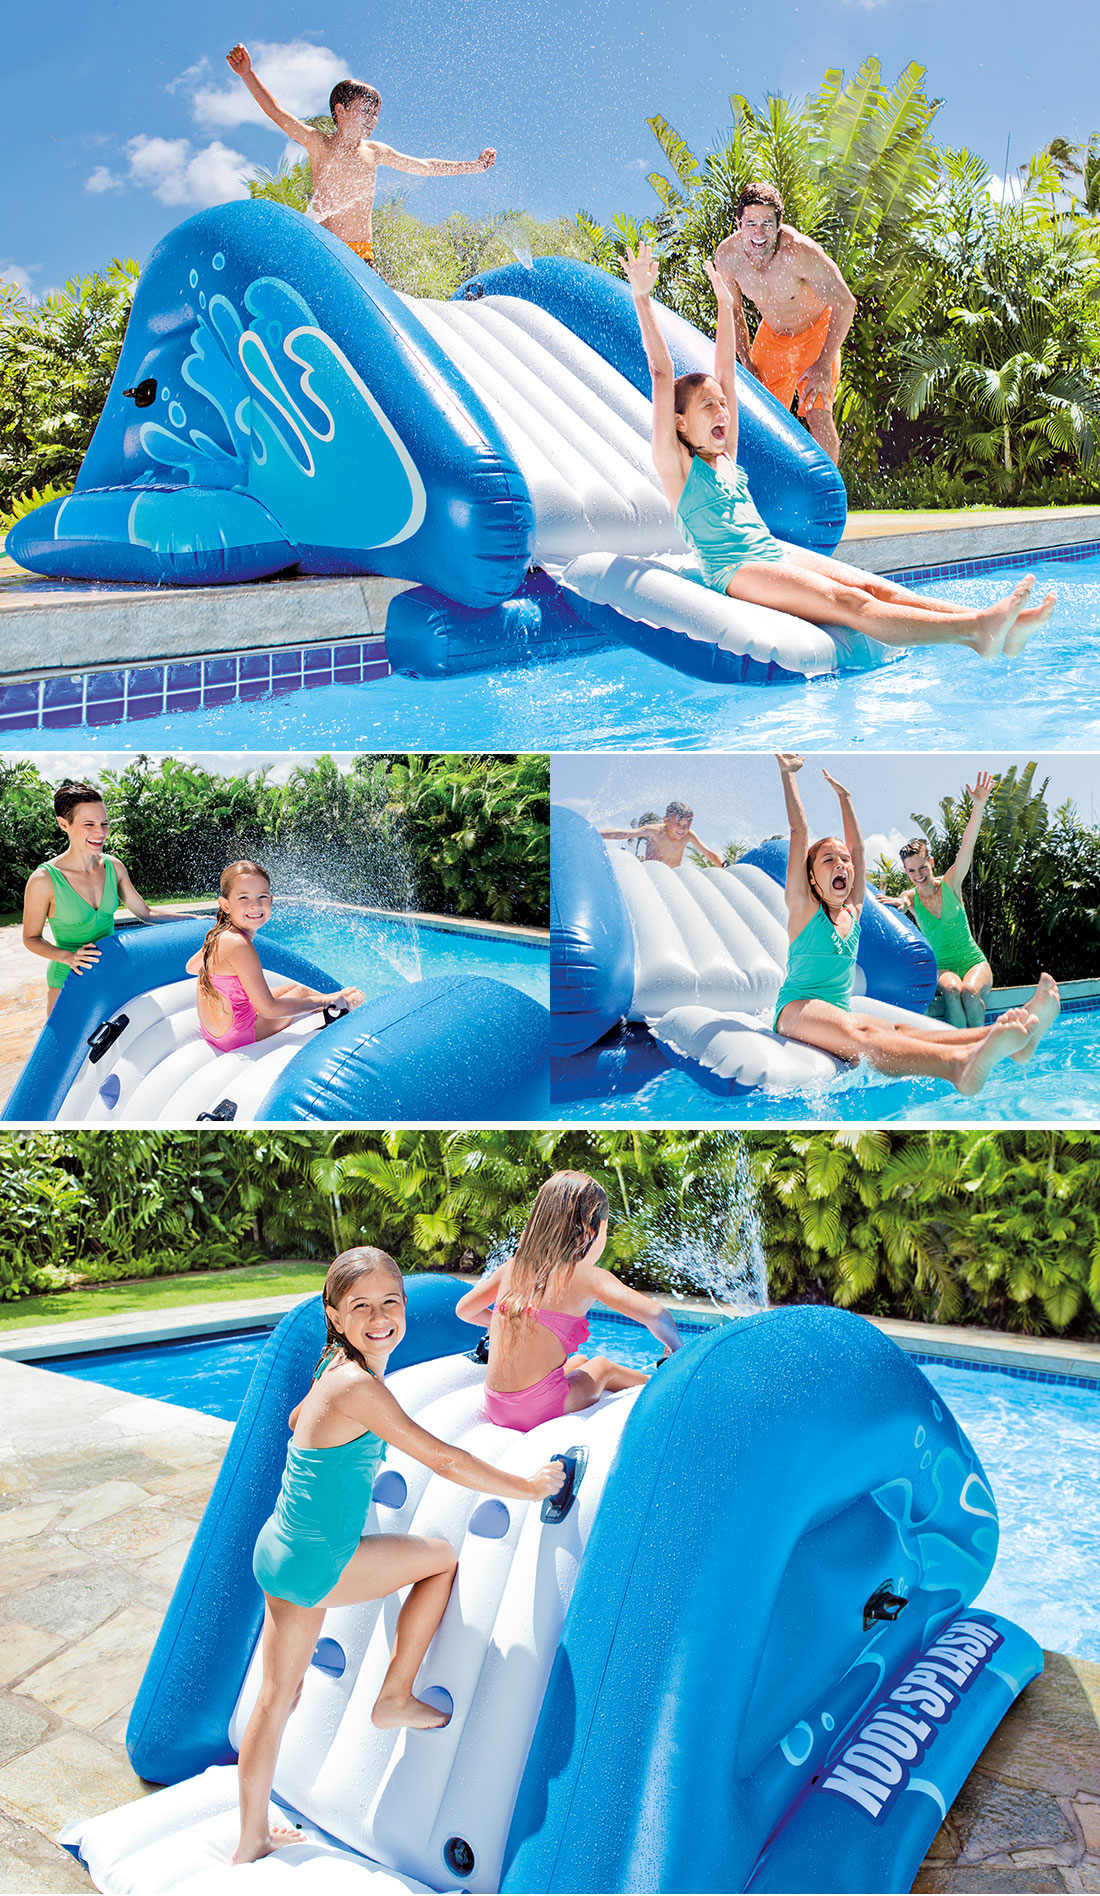 Toboggan piscine gonflable cool piscine gonflable pour for Toboggan piscine adulte